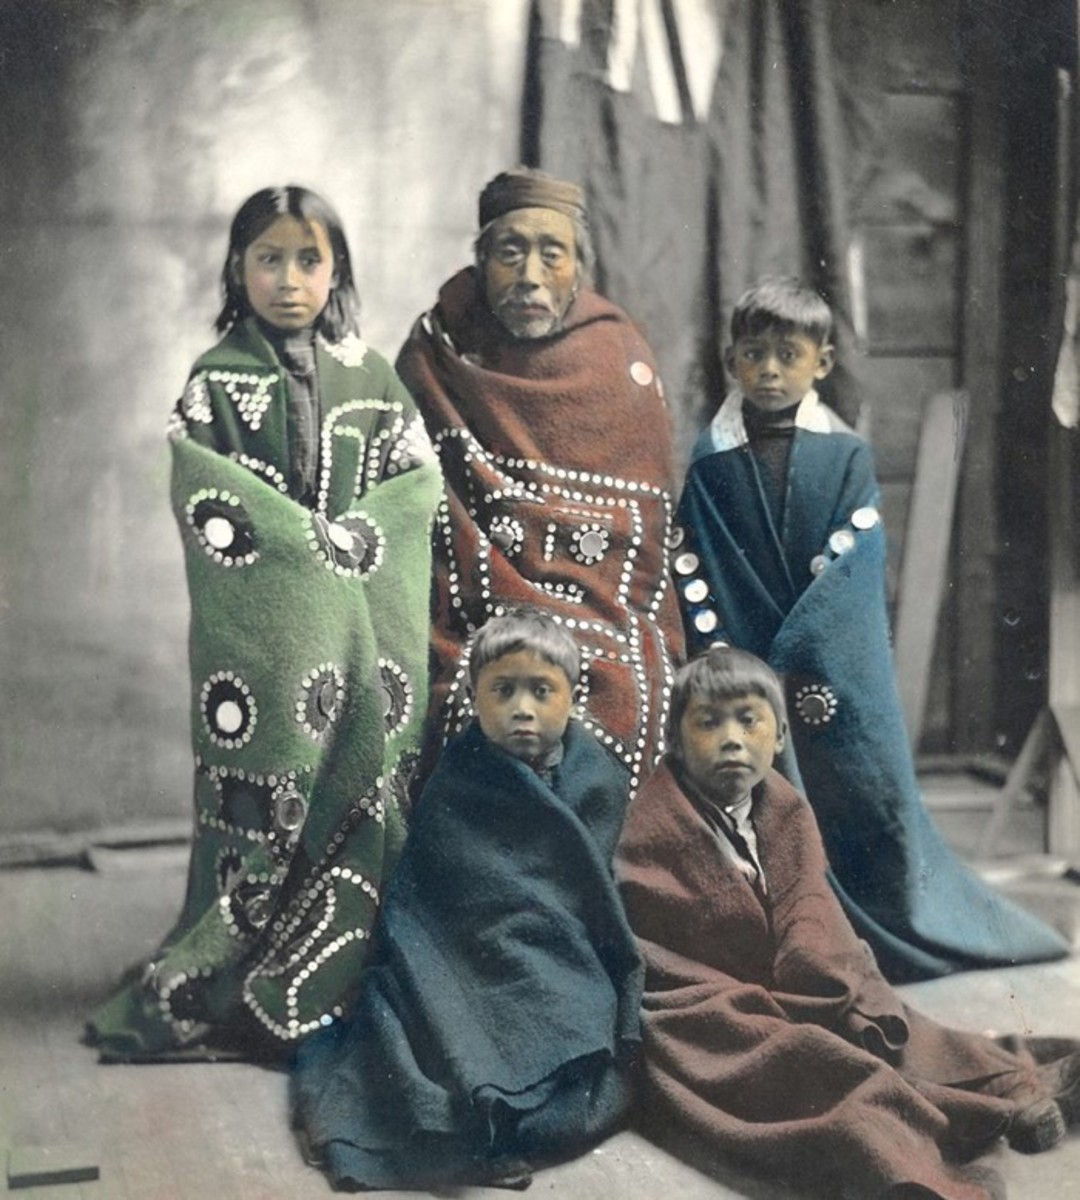 portraits, Group at a Potlatch. ca. 1900. British Columbia. Photo by Benjamin W. Leeson.